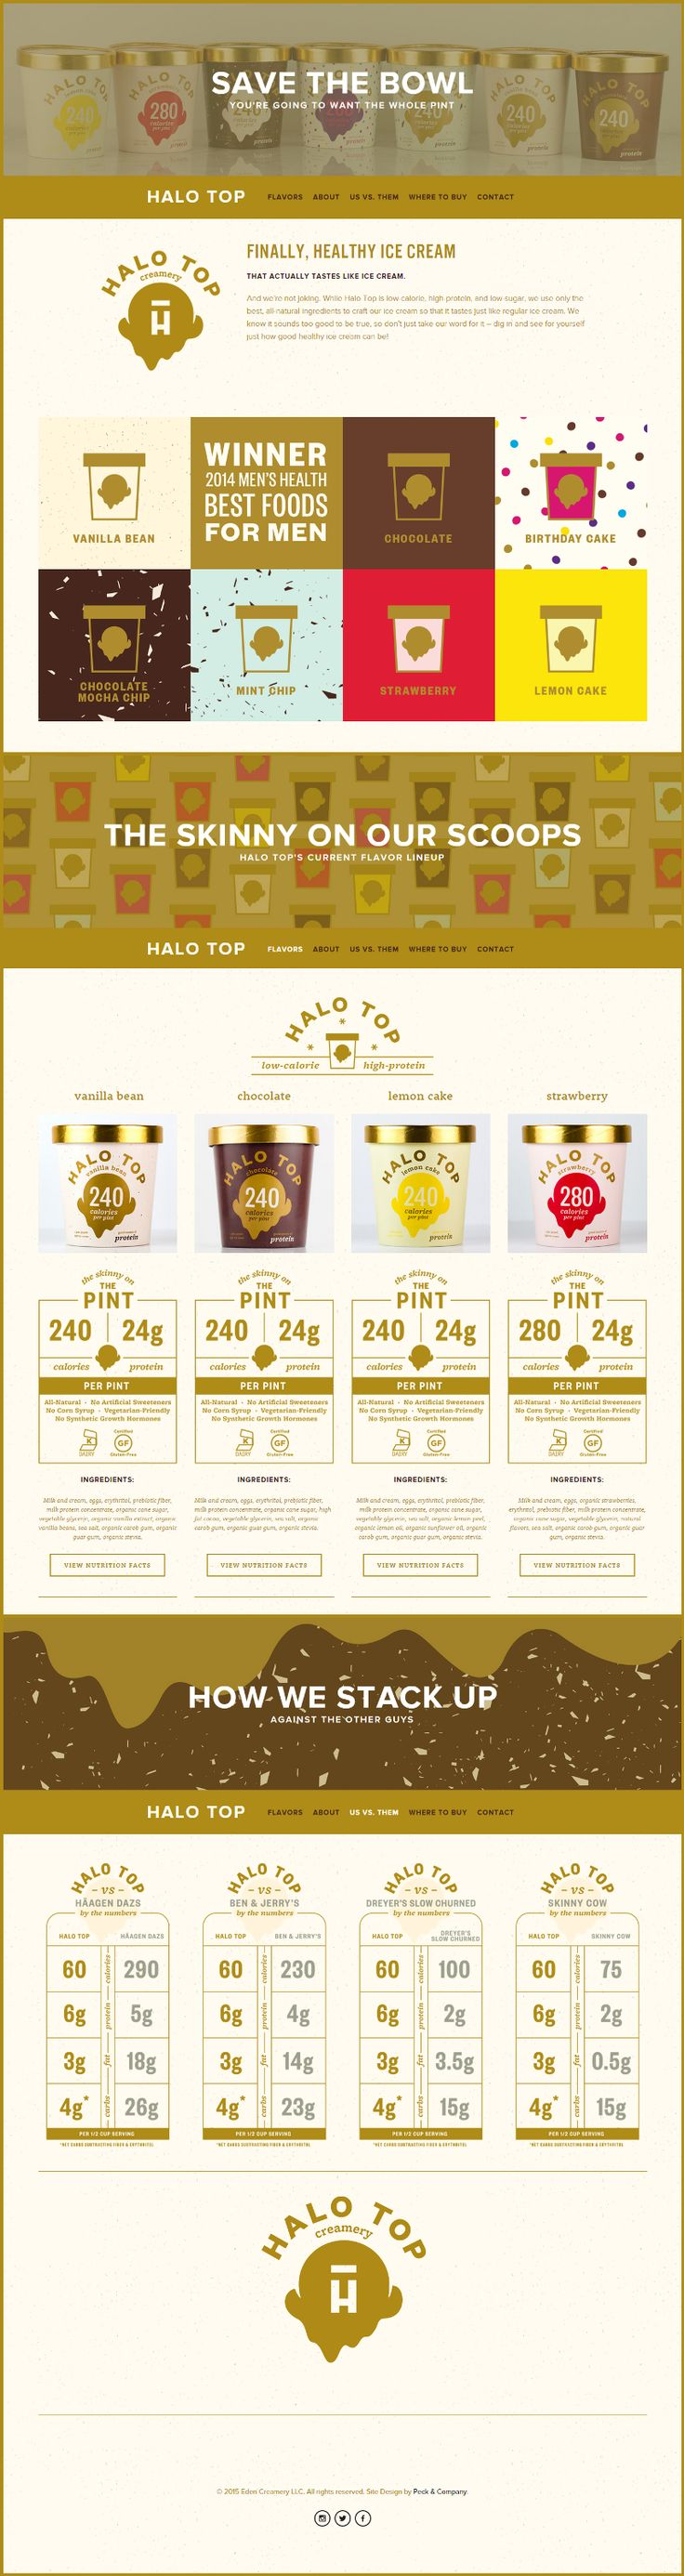 Halo Top. With healthy comes tasty.